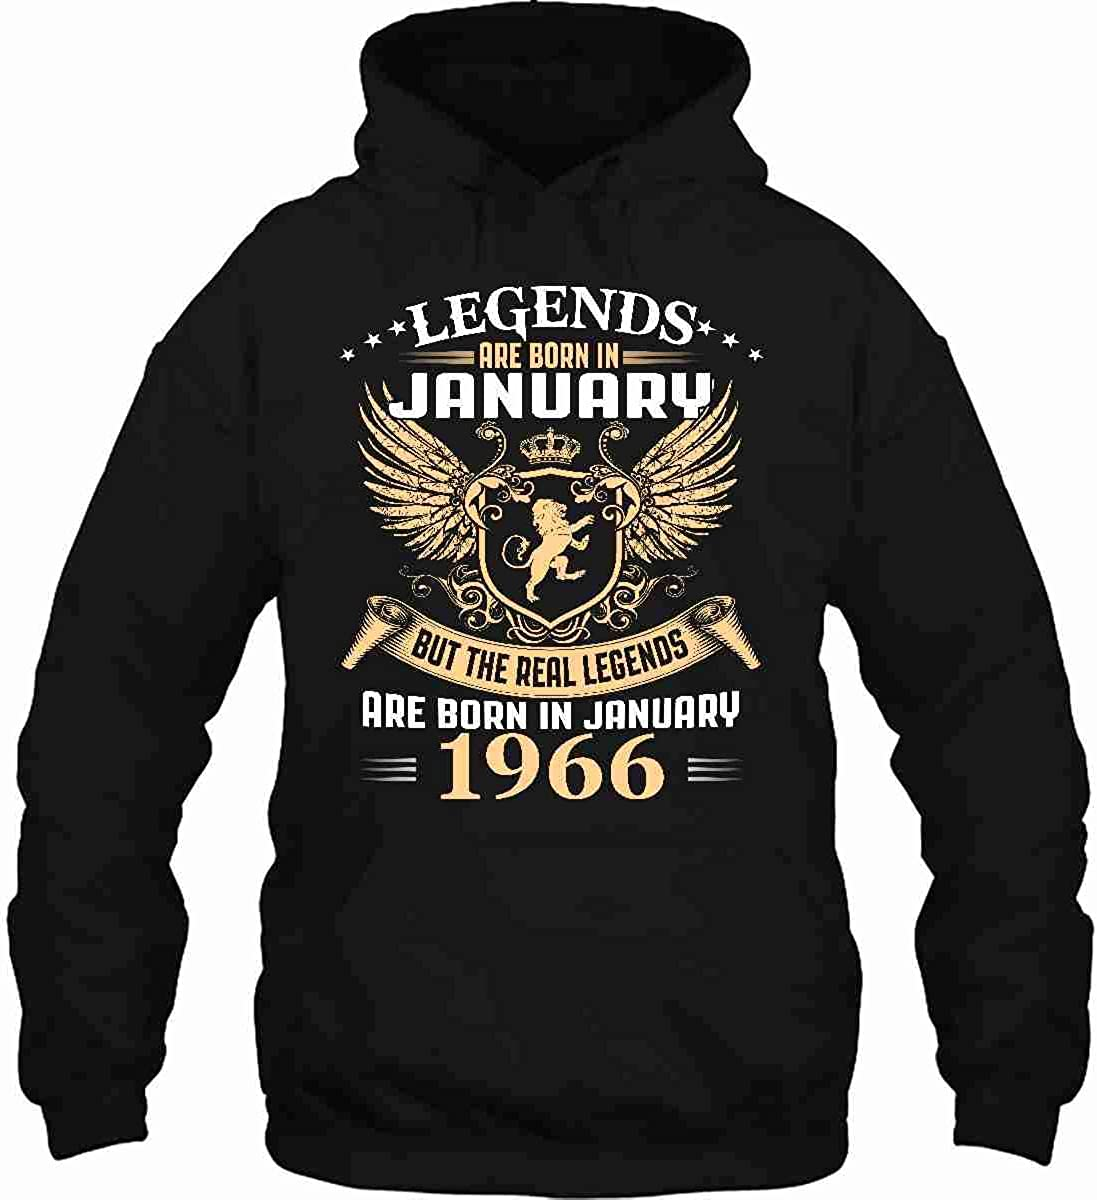 Kings Legends are Born in January 1966